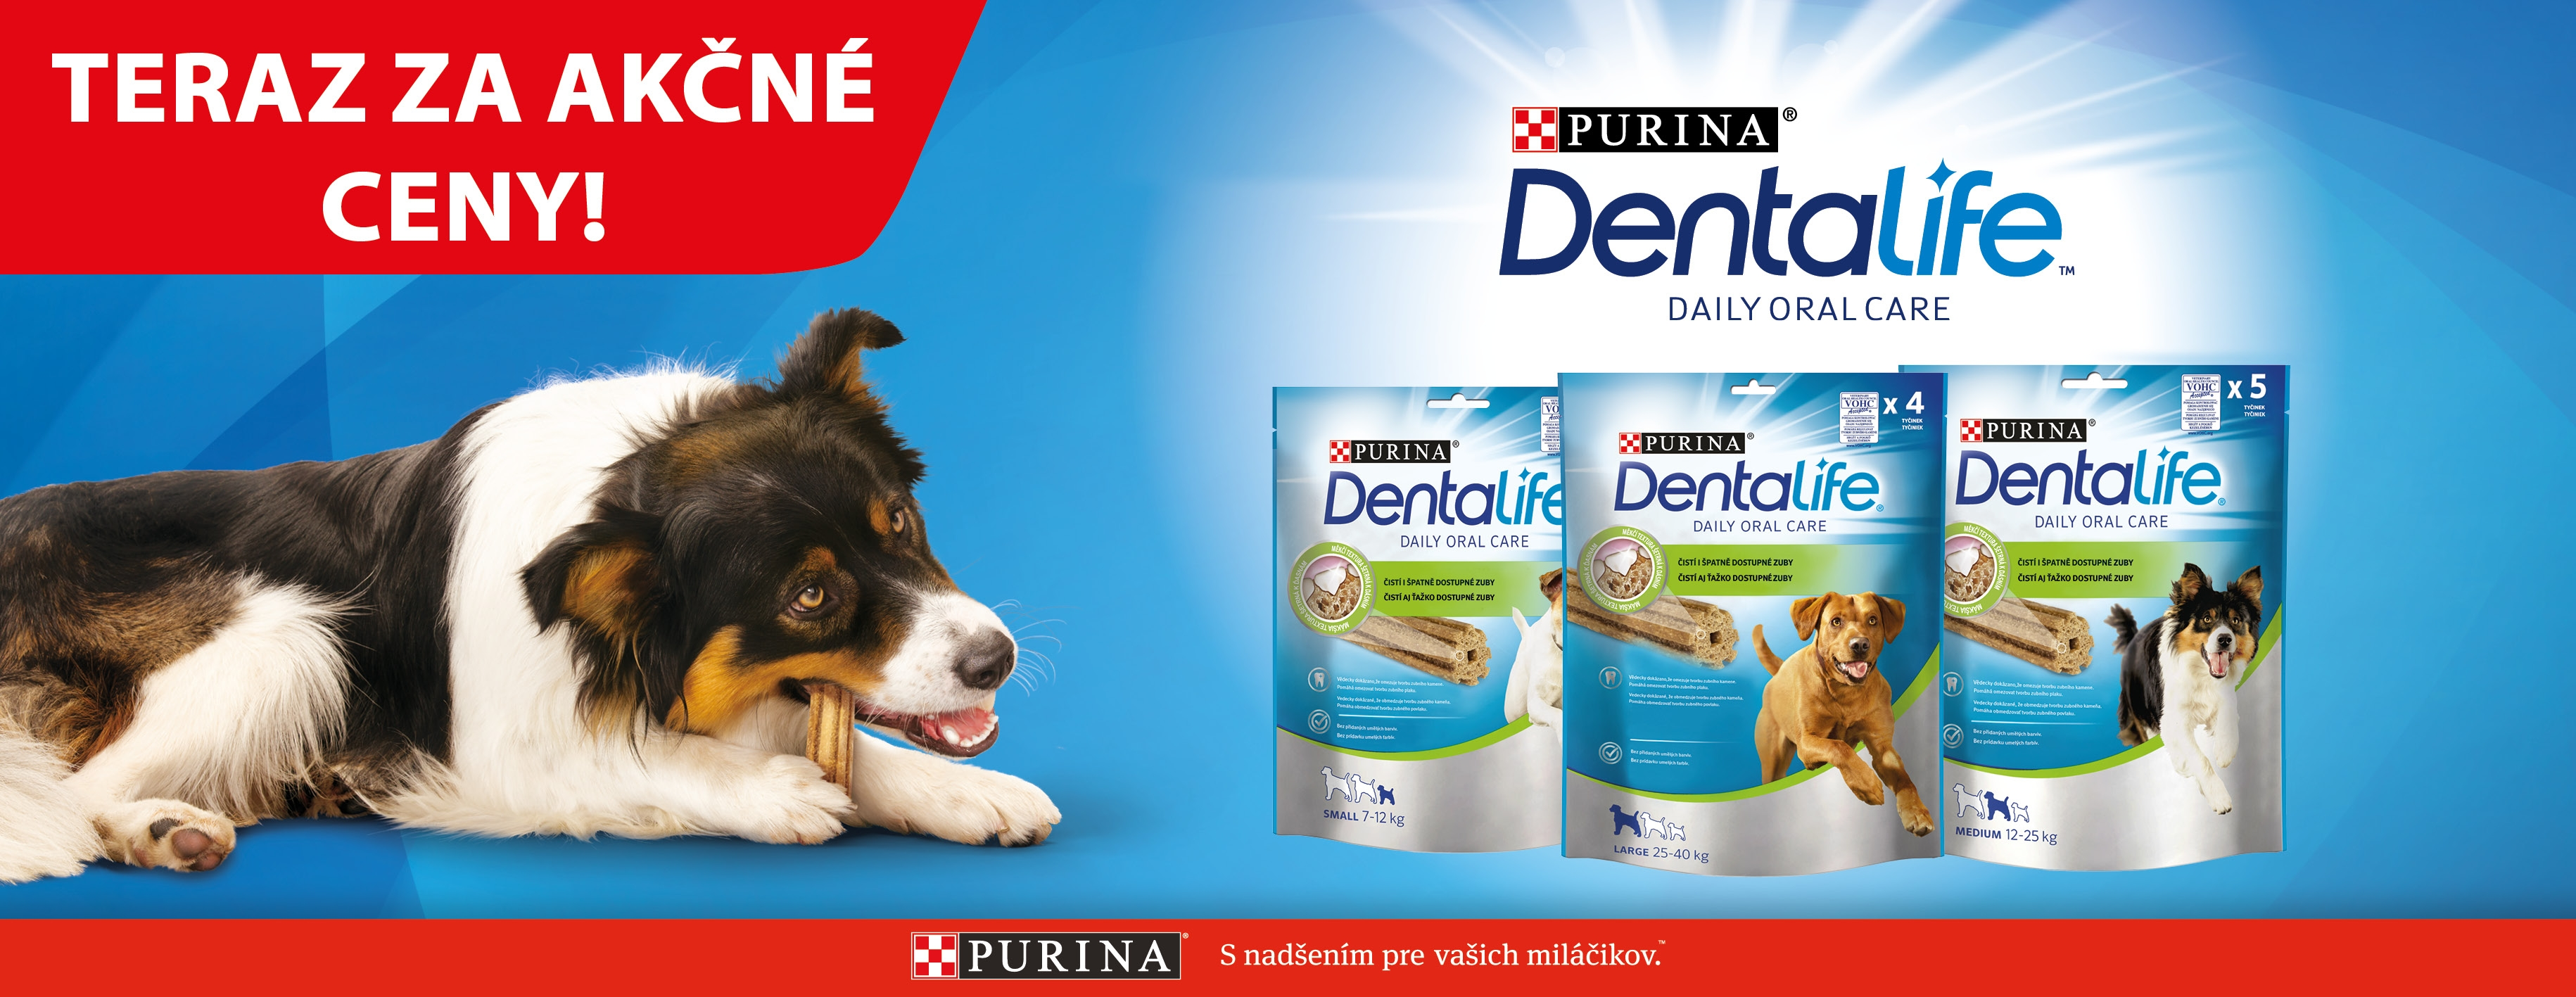 Dentalife Purina